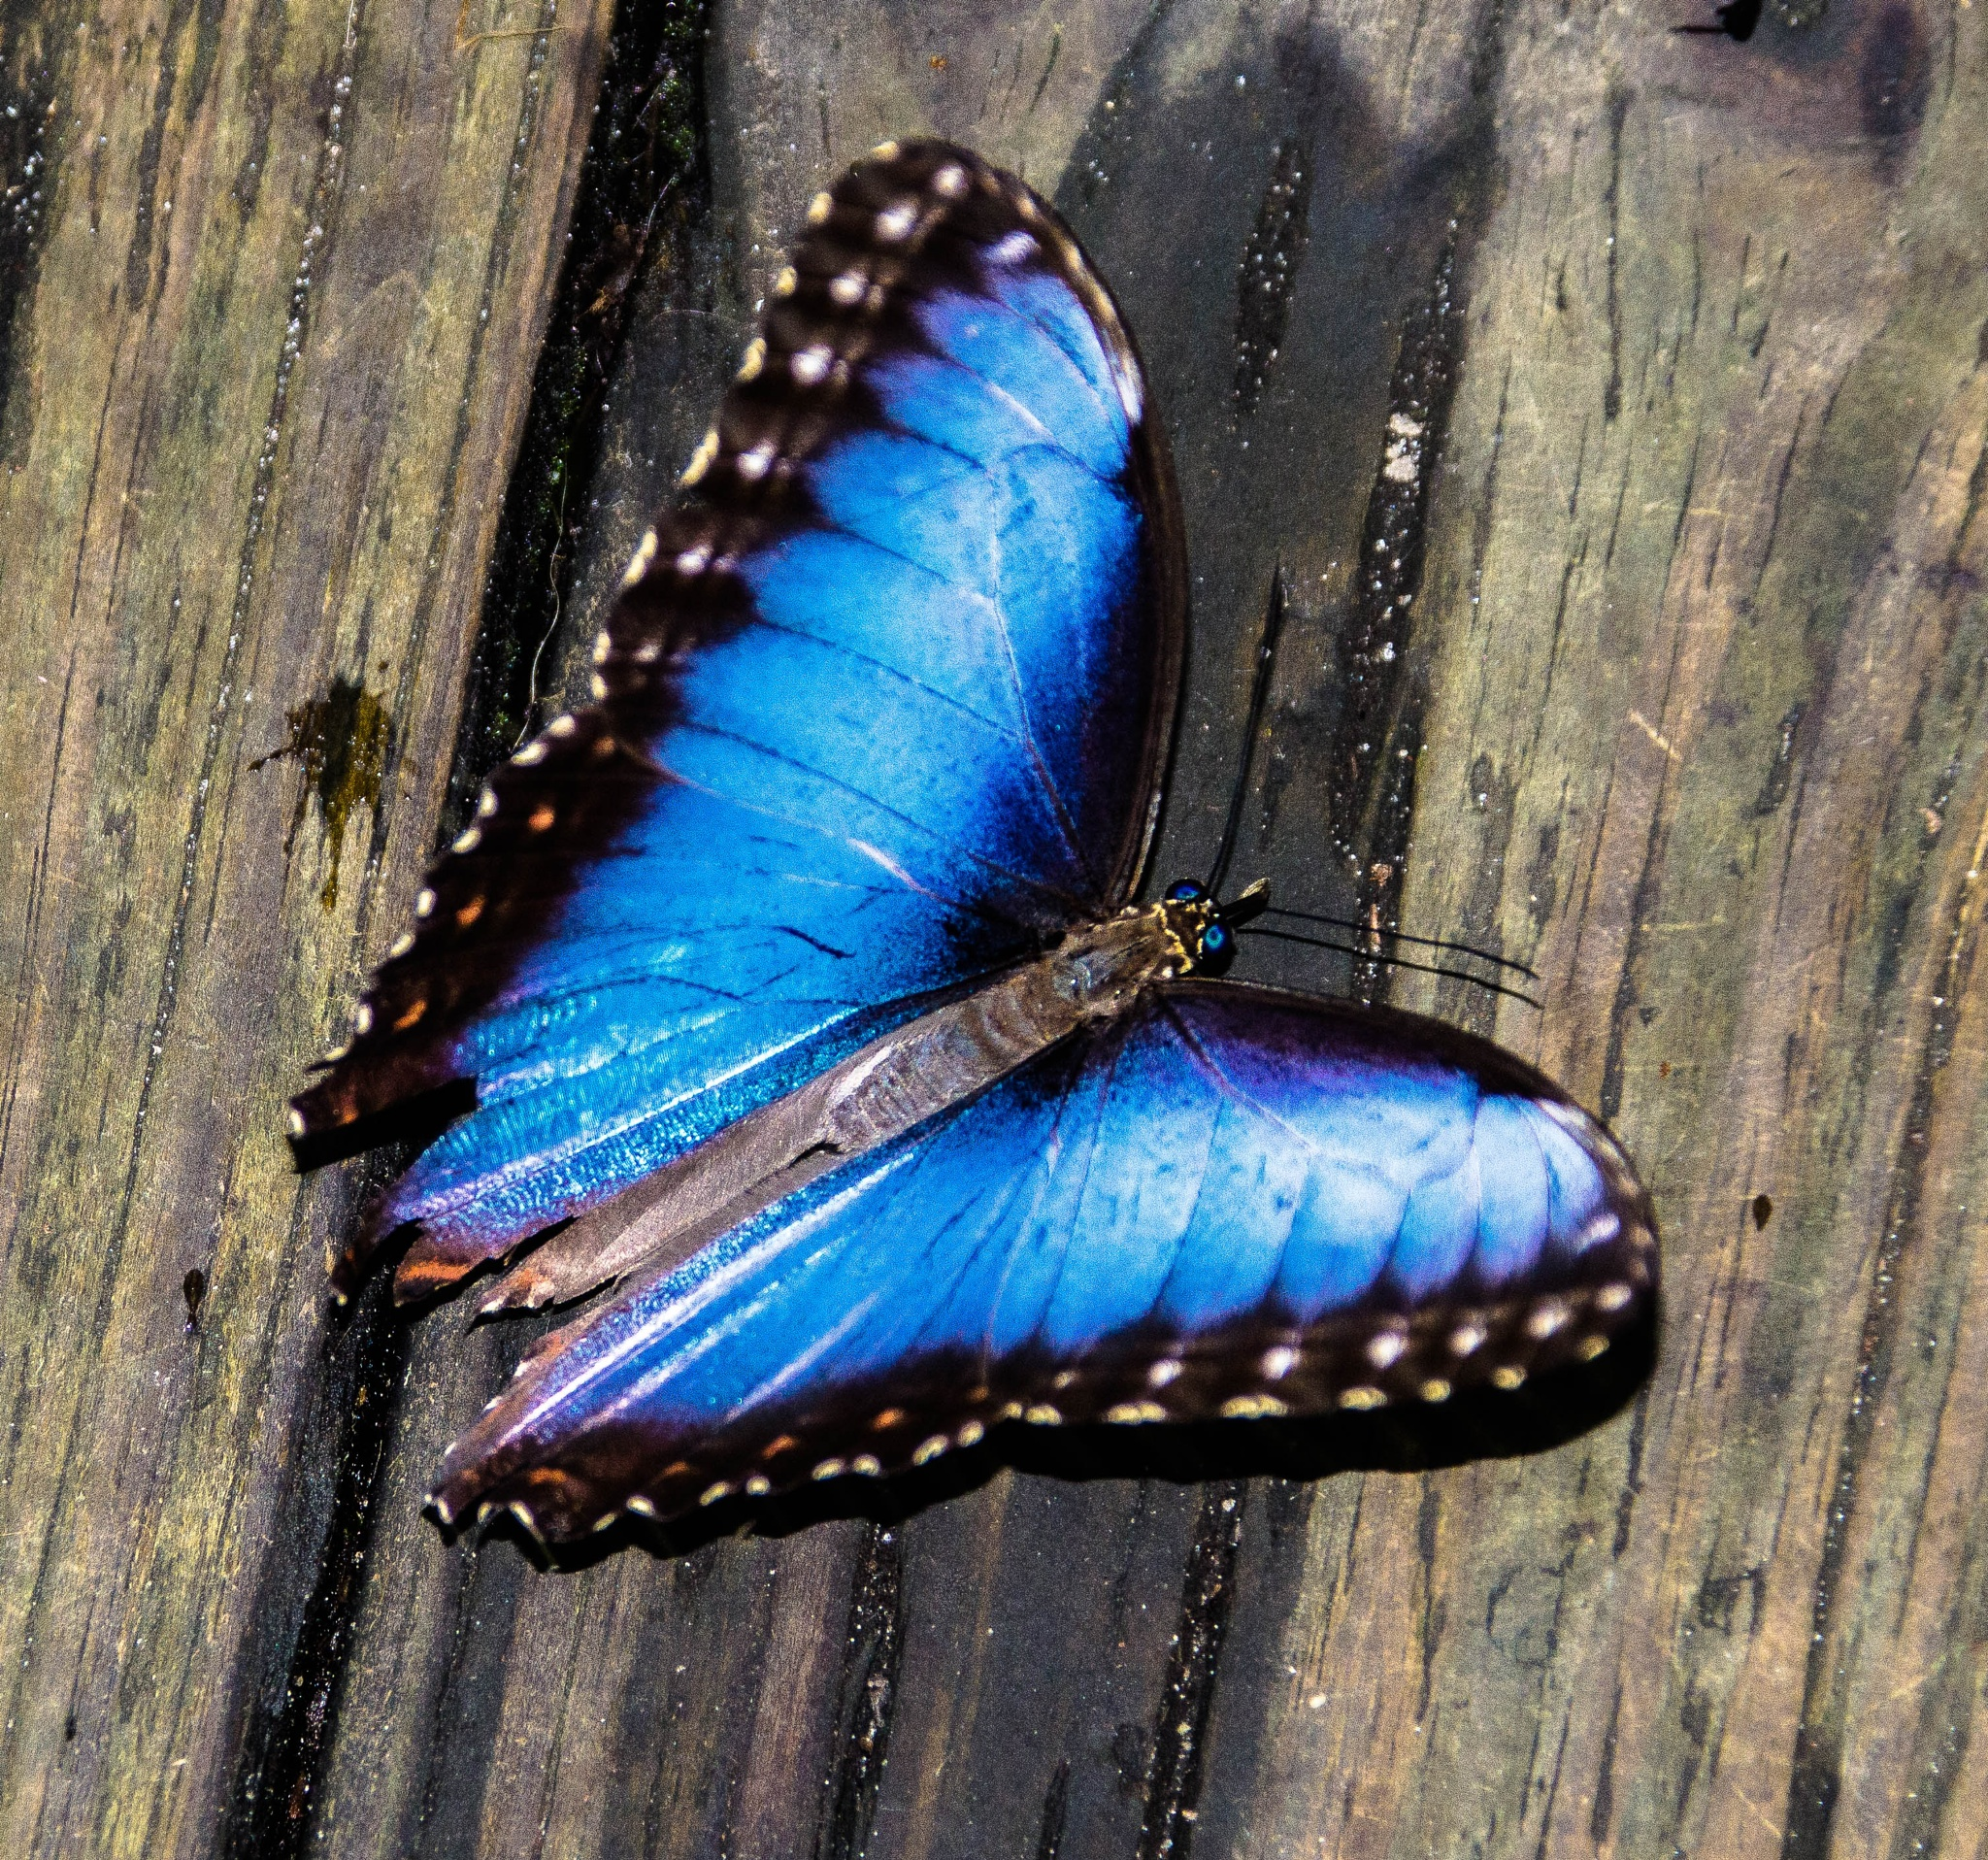 My Elusive Butterfly - A Blue Morpho by Peter Cavaliere